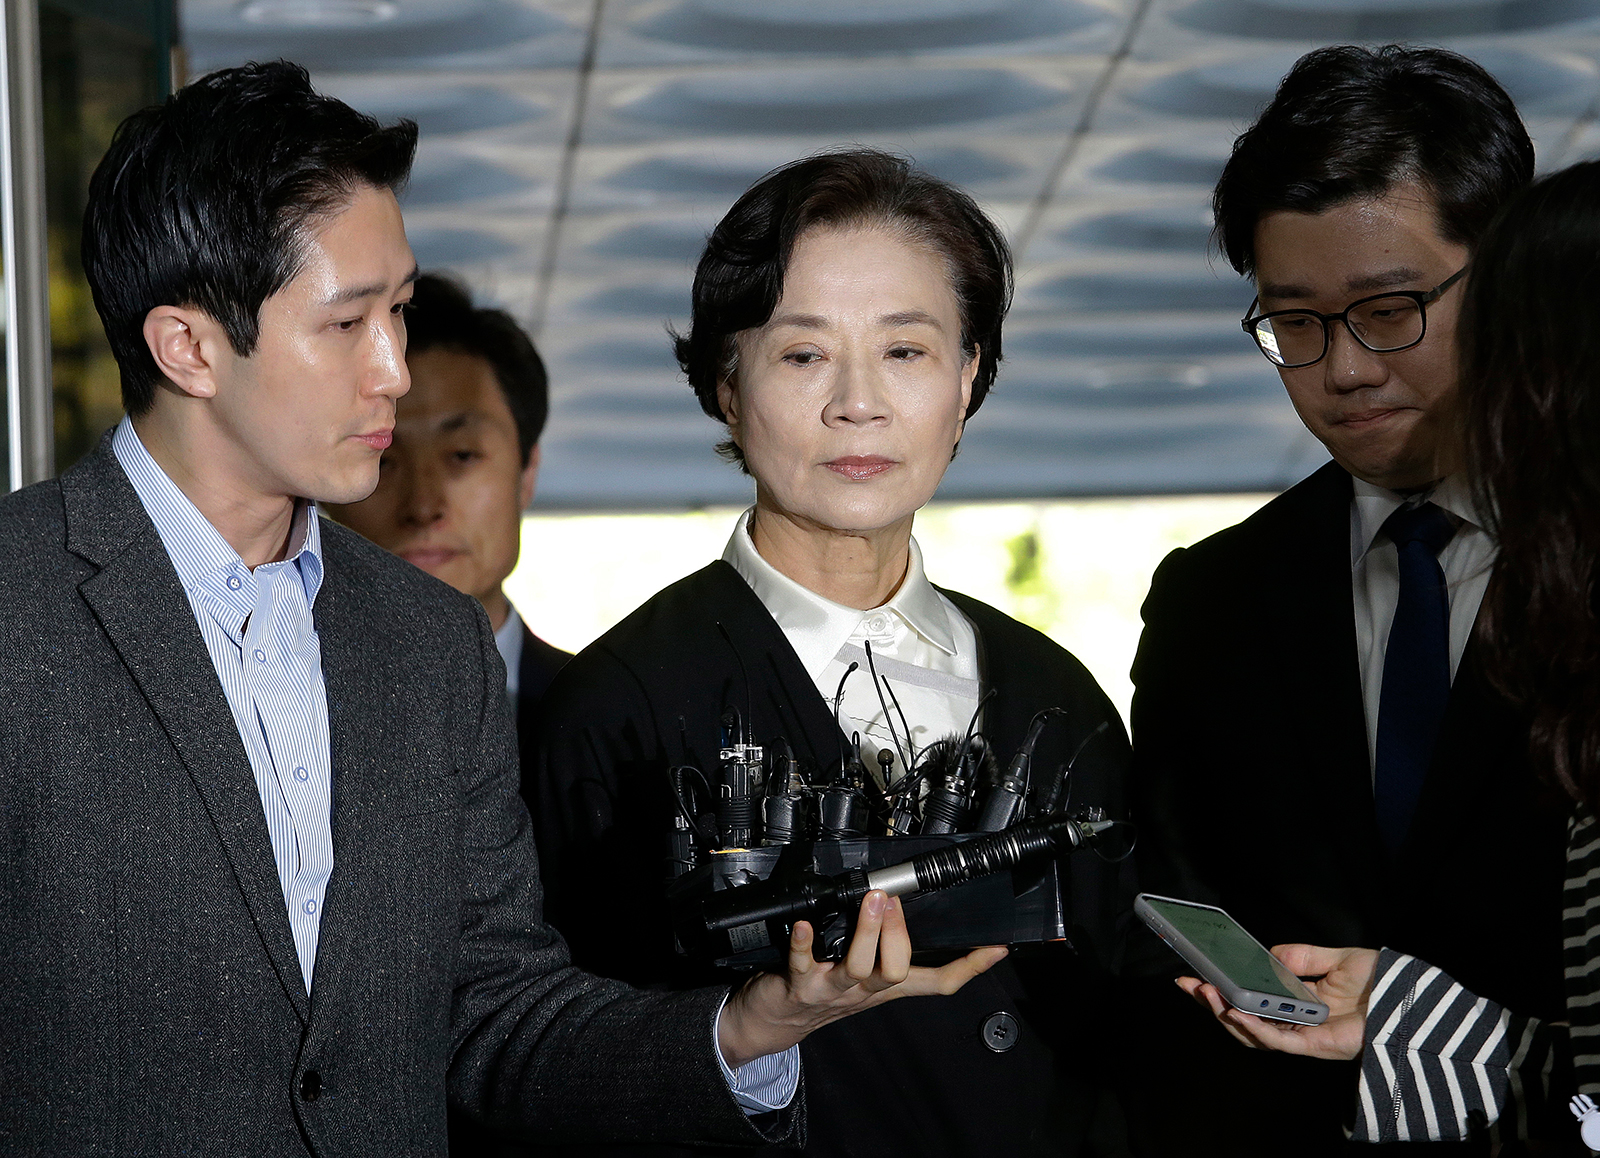 Korean Air matriarch receives suspended jail sentence for abusing domestic staff